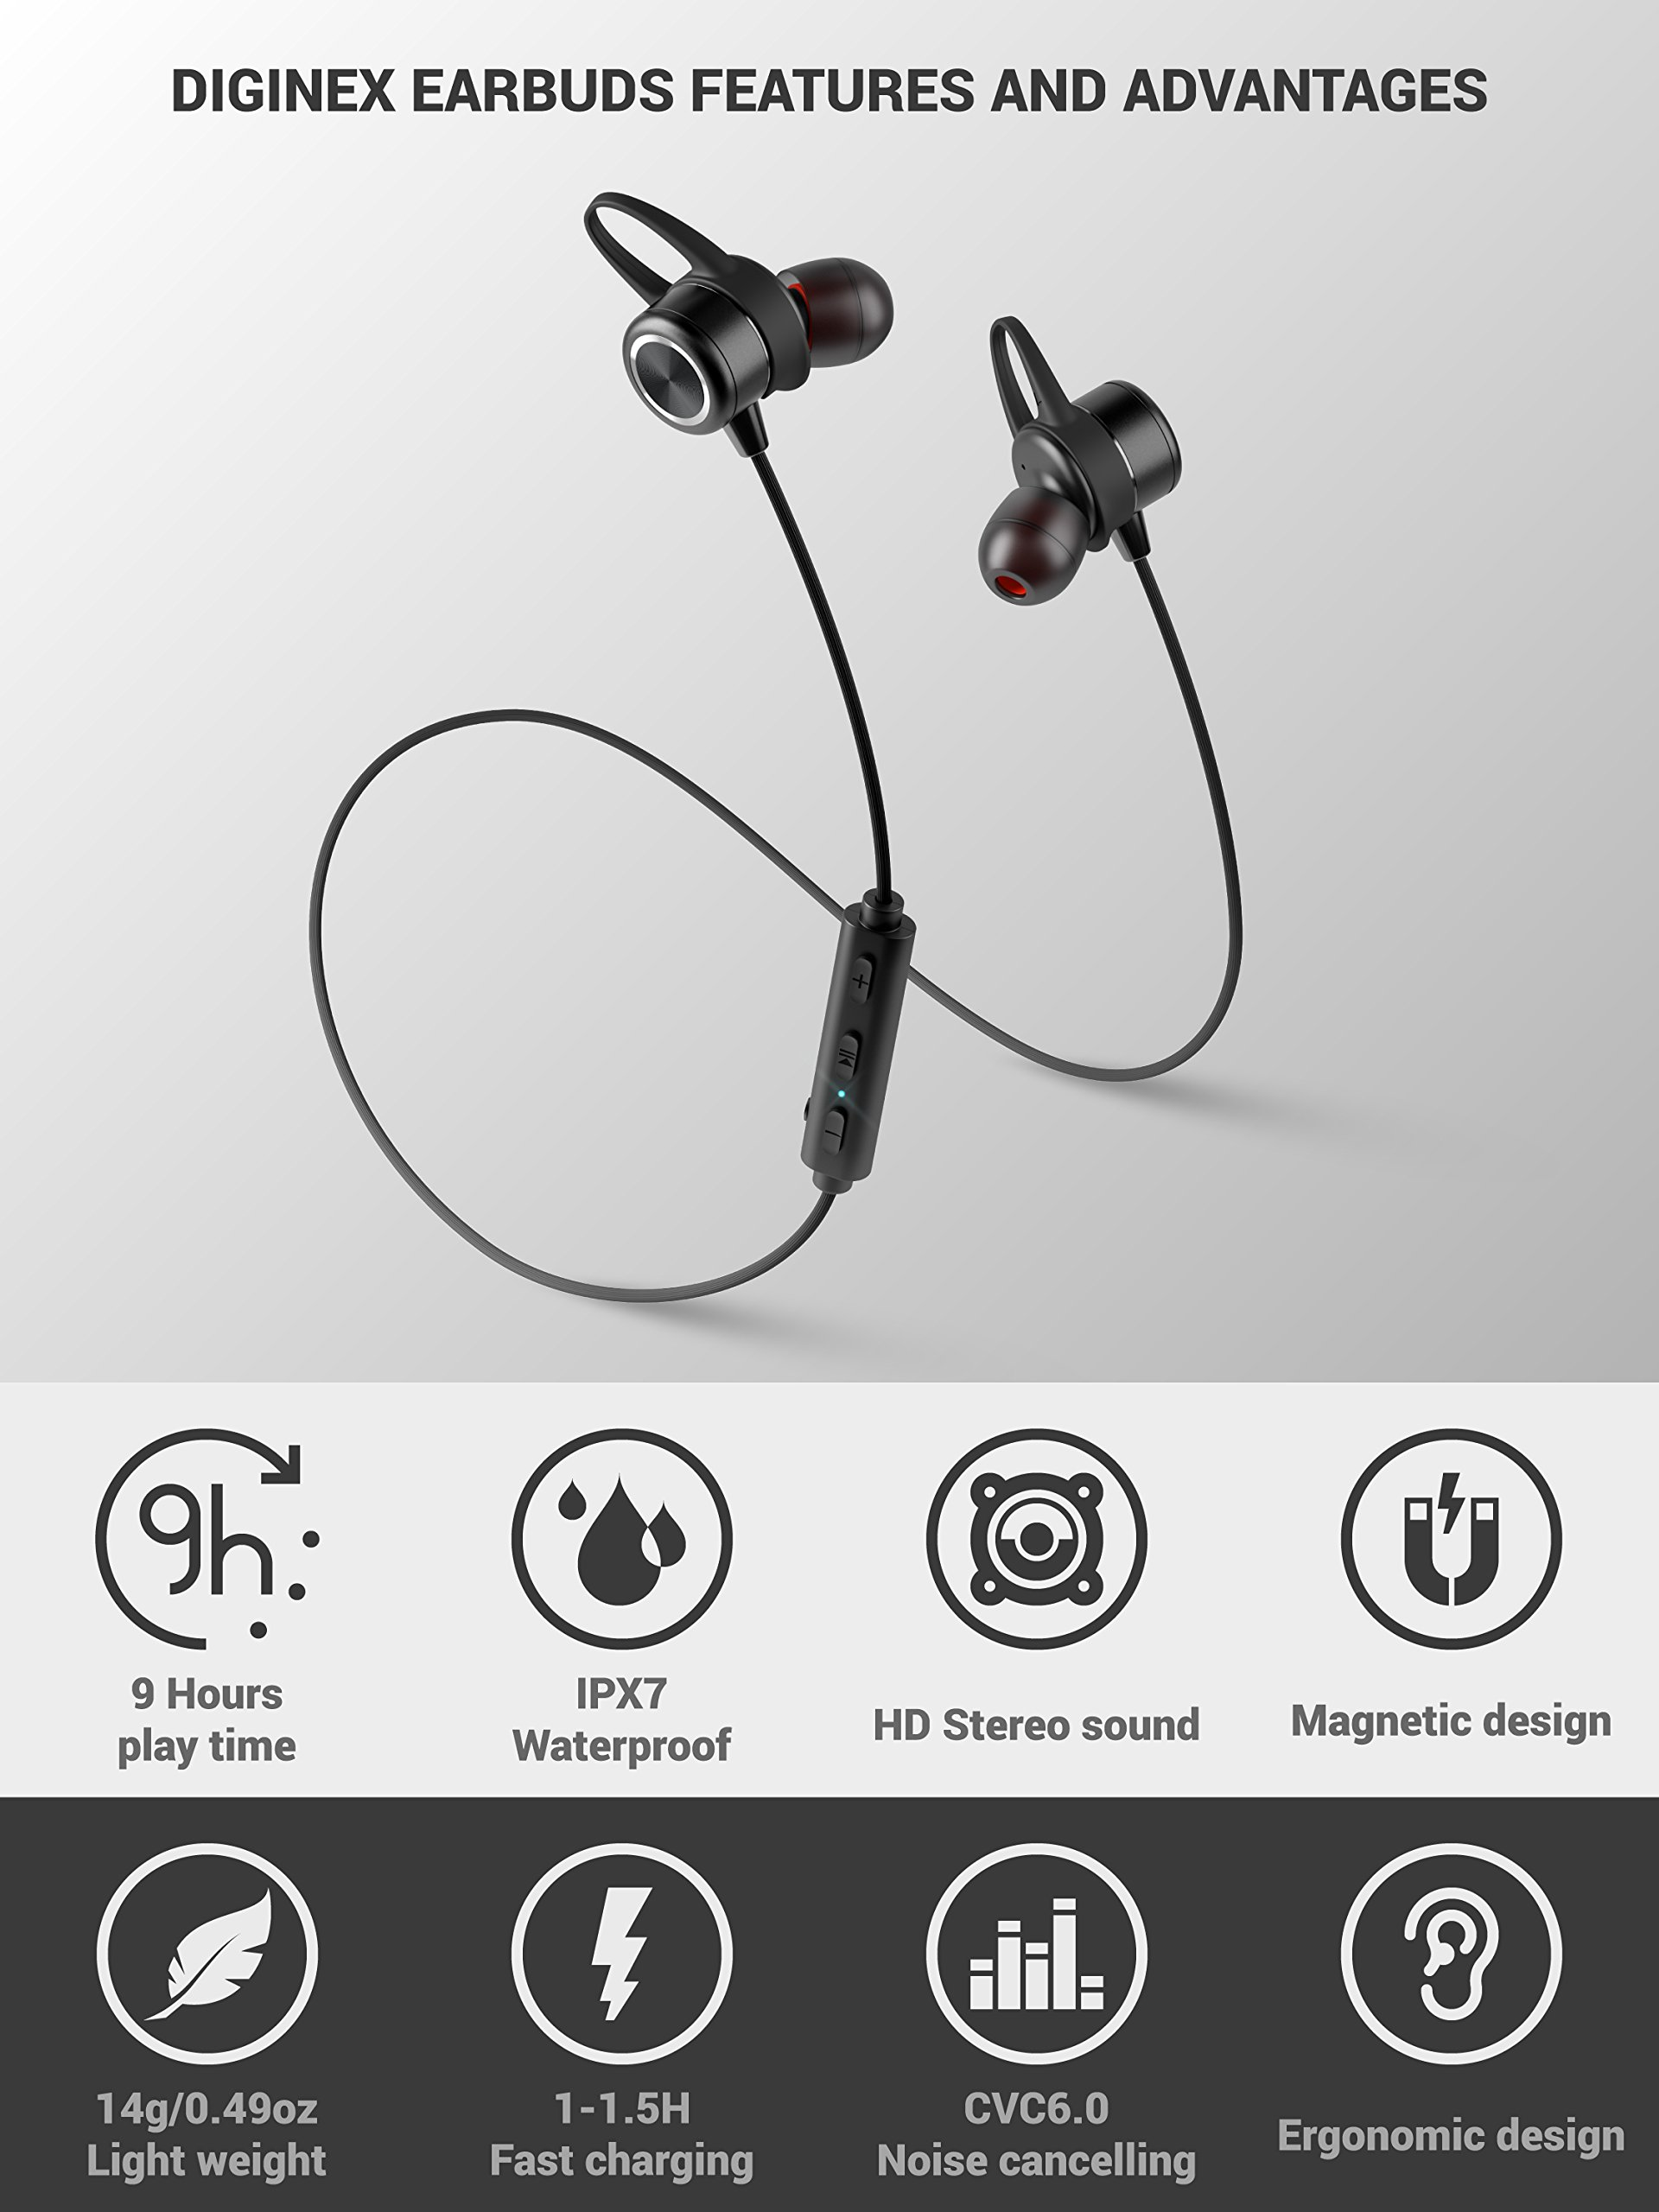 Diginex Bluetooth Earbuds Wireless Magnetic Headset Sport Earphones for Running IPX7 Waterproof Headphones 9 Hours Playtime High Fidelity Stereo Sound and Noise Cancelling Mic 1 Hour Recharge – Black by Diginex (Image #2)